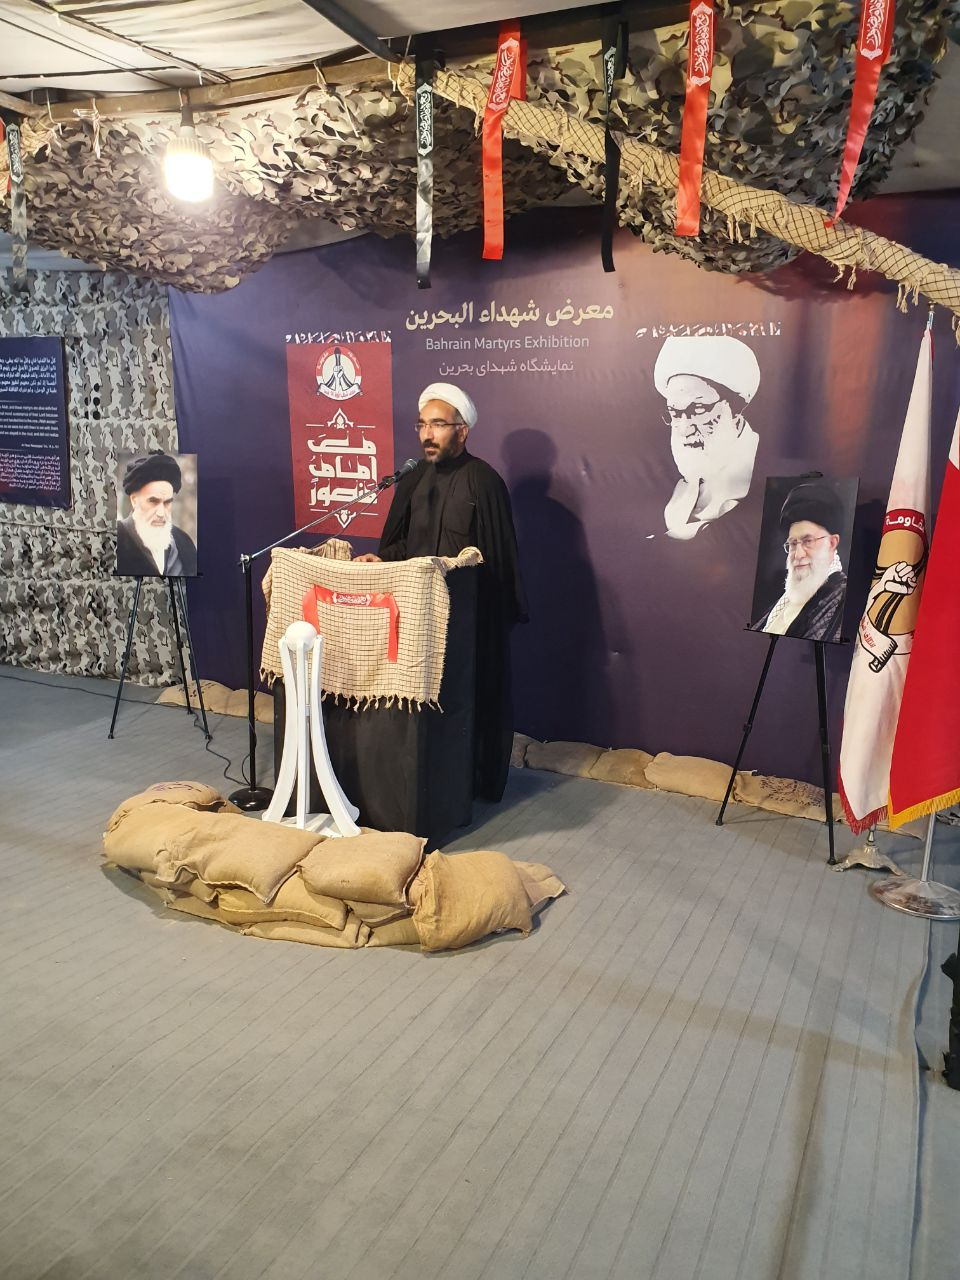 Extensive Interaction with Sections of Bahrain Martyrs Exhibition on its Fourth Day